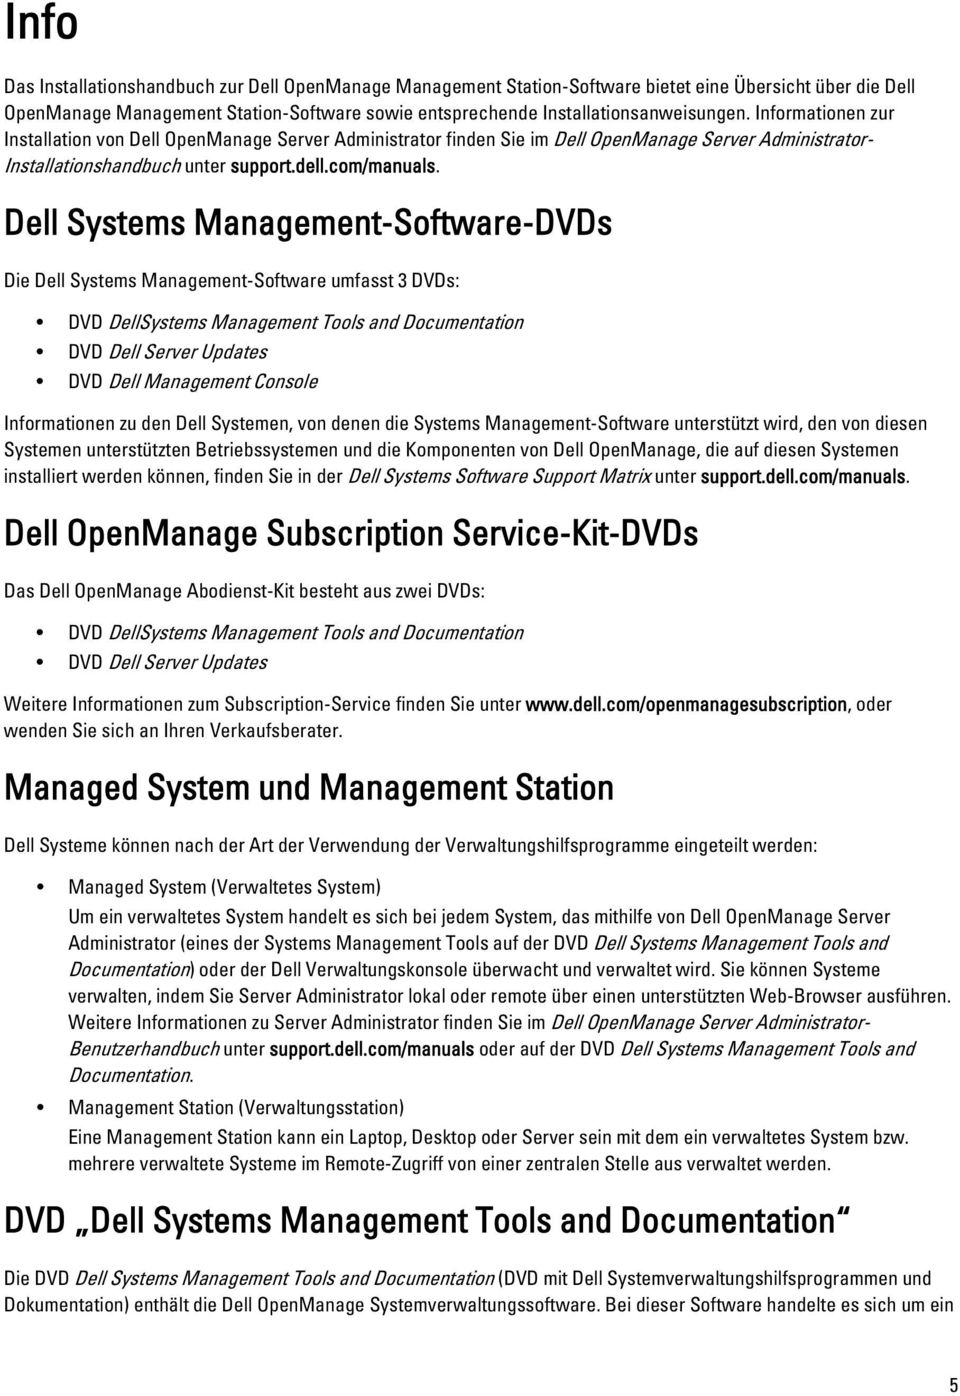 Dell Systems Management-Software-DVDs Die Dell Systems Management-Software umfasst 3 DVDs: DVD DellSystems Management Tools and Documentation DVD Dell Server Updates DVD Dell Management Console